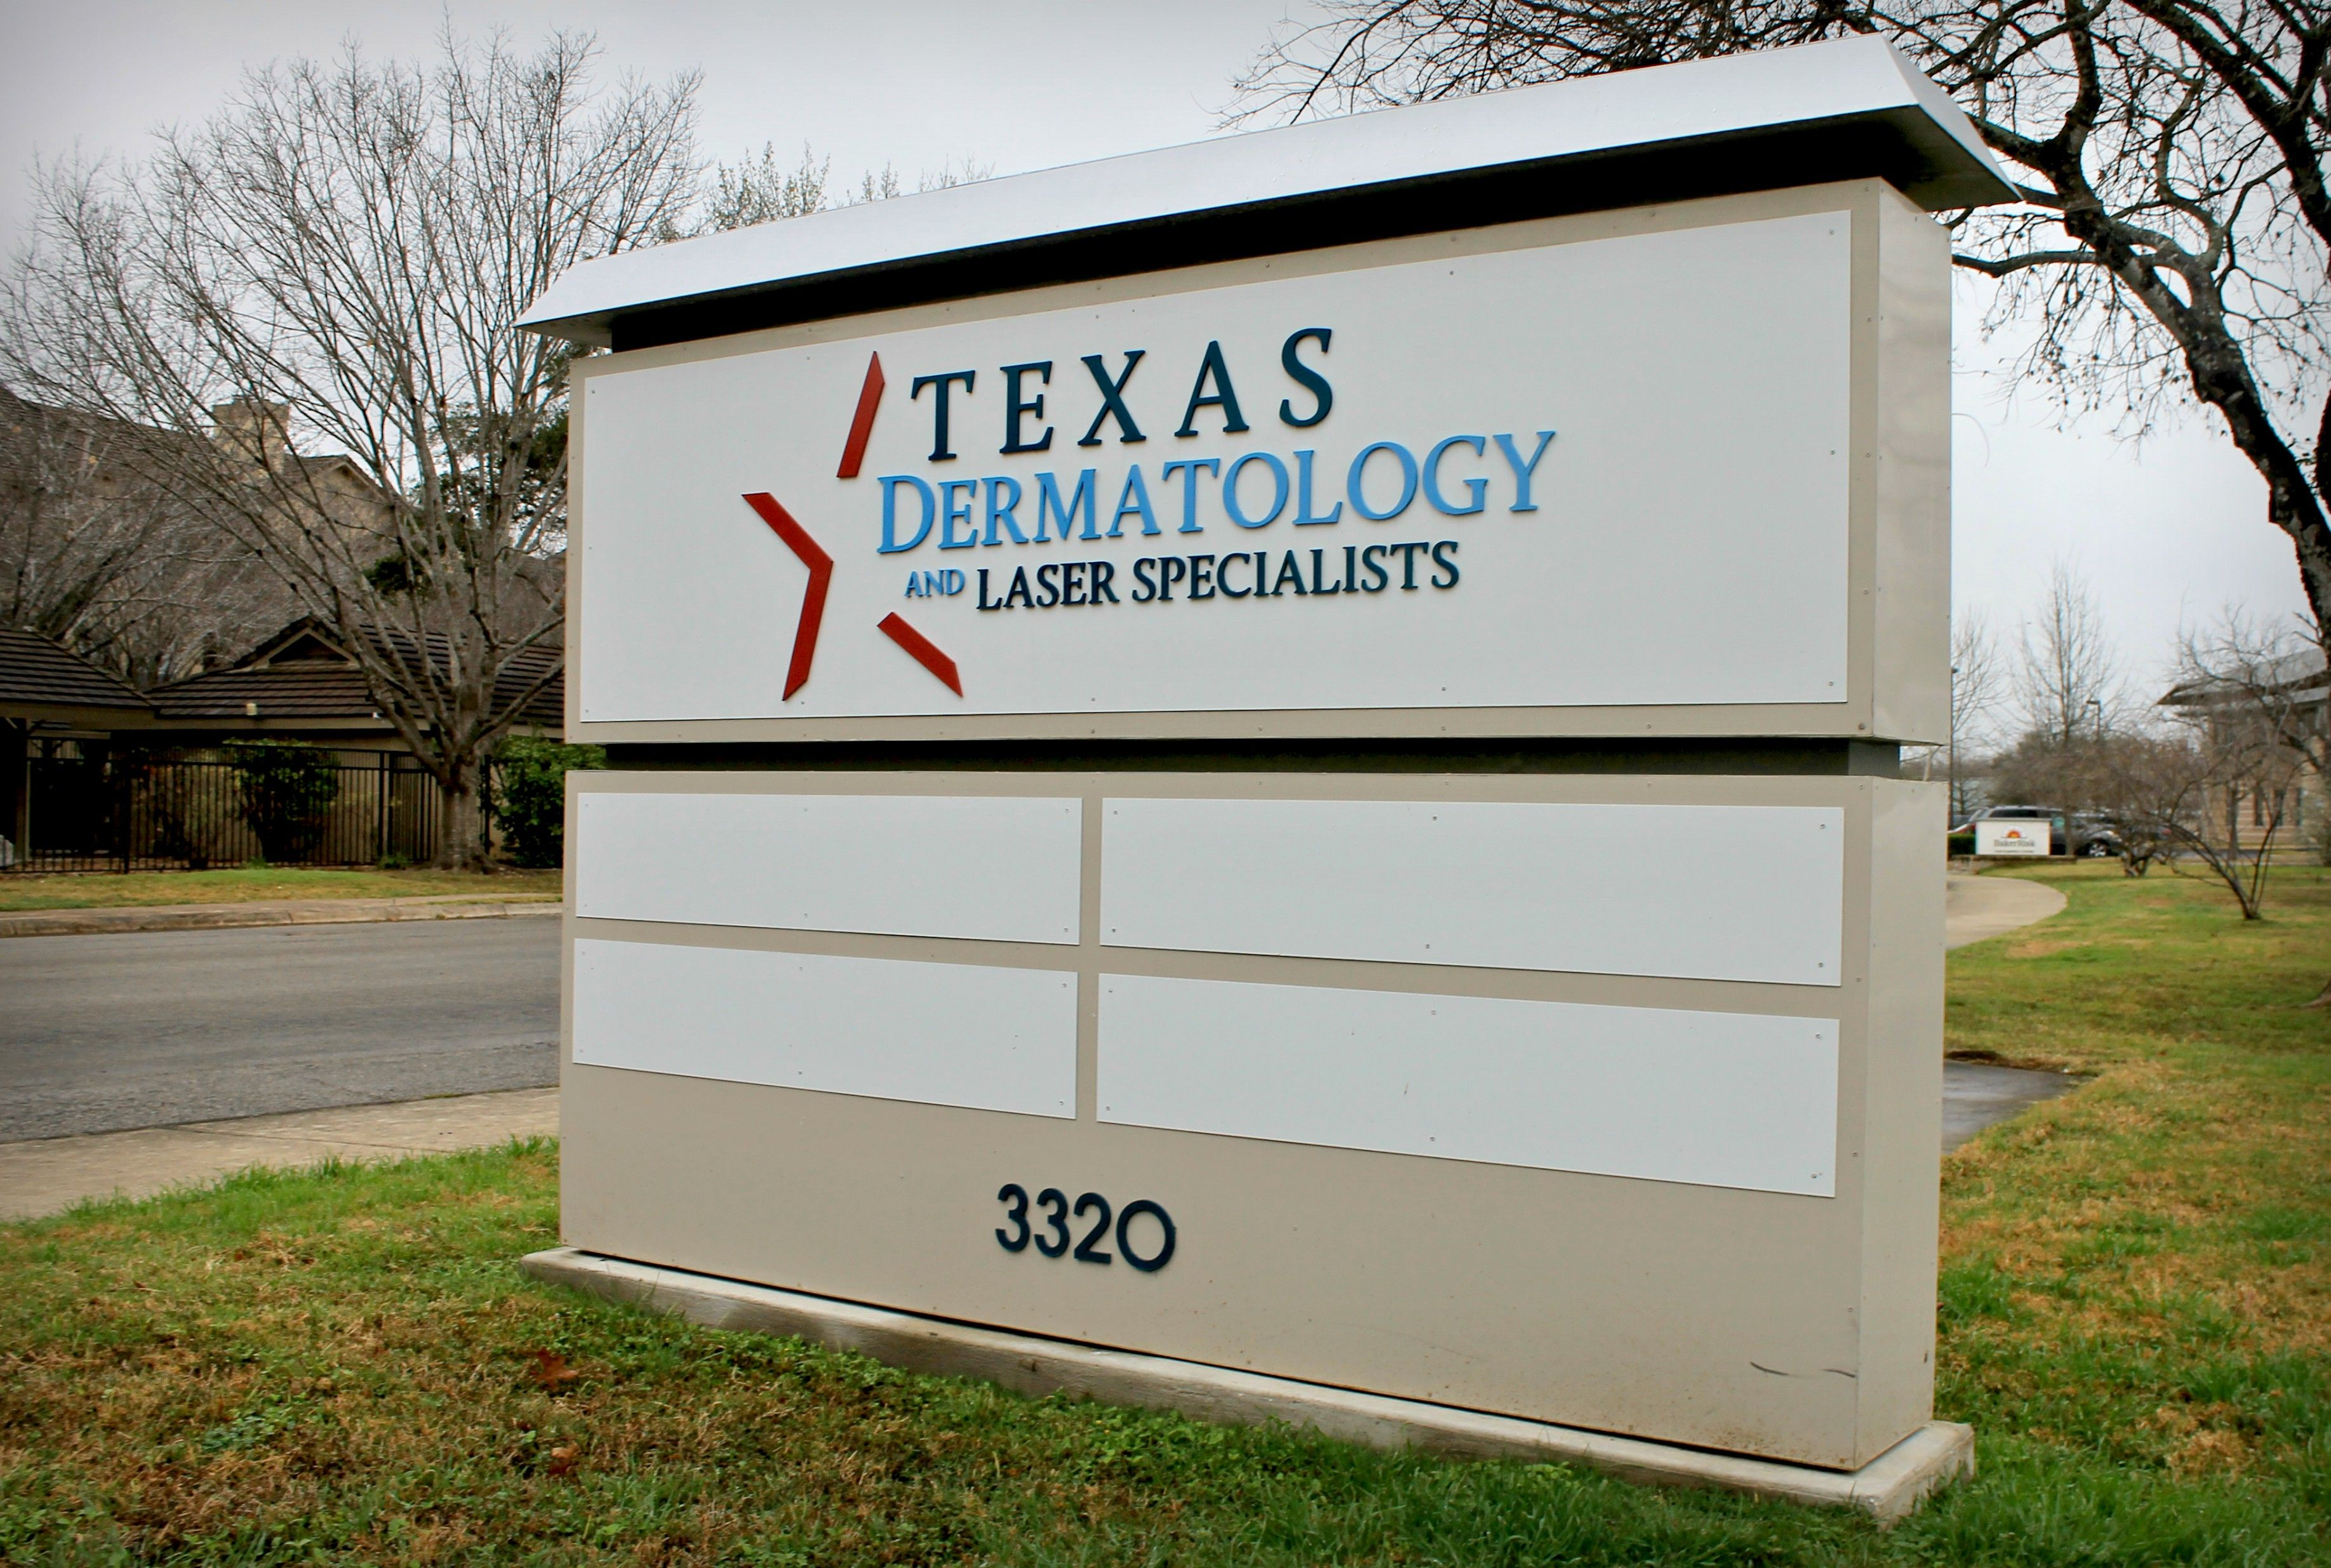 Texas Dermatology And Laser Specialists Welcome To Our San Antonio Office We Offer A Full Range Of Dermatological Serv Dermatology Clinical Research Clinic